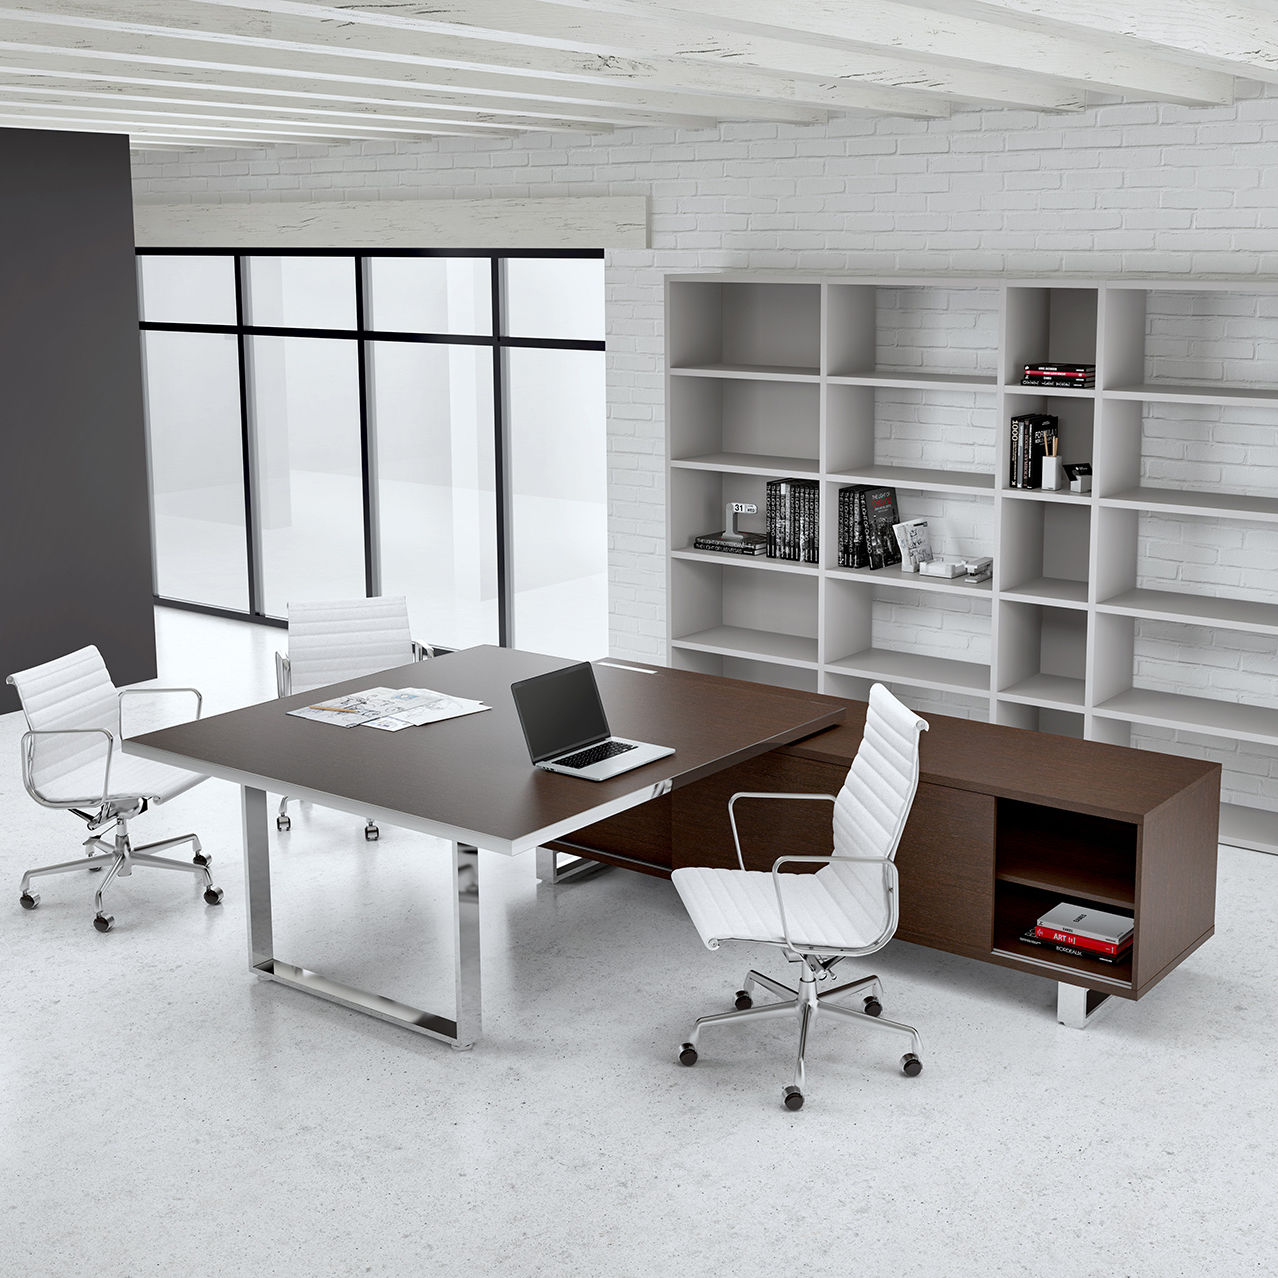 Executive Desk Steel Stainless Glass Archimede By Filippon Mirto Antonel